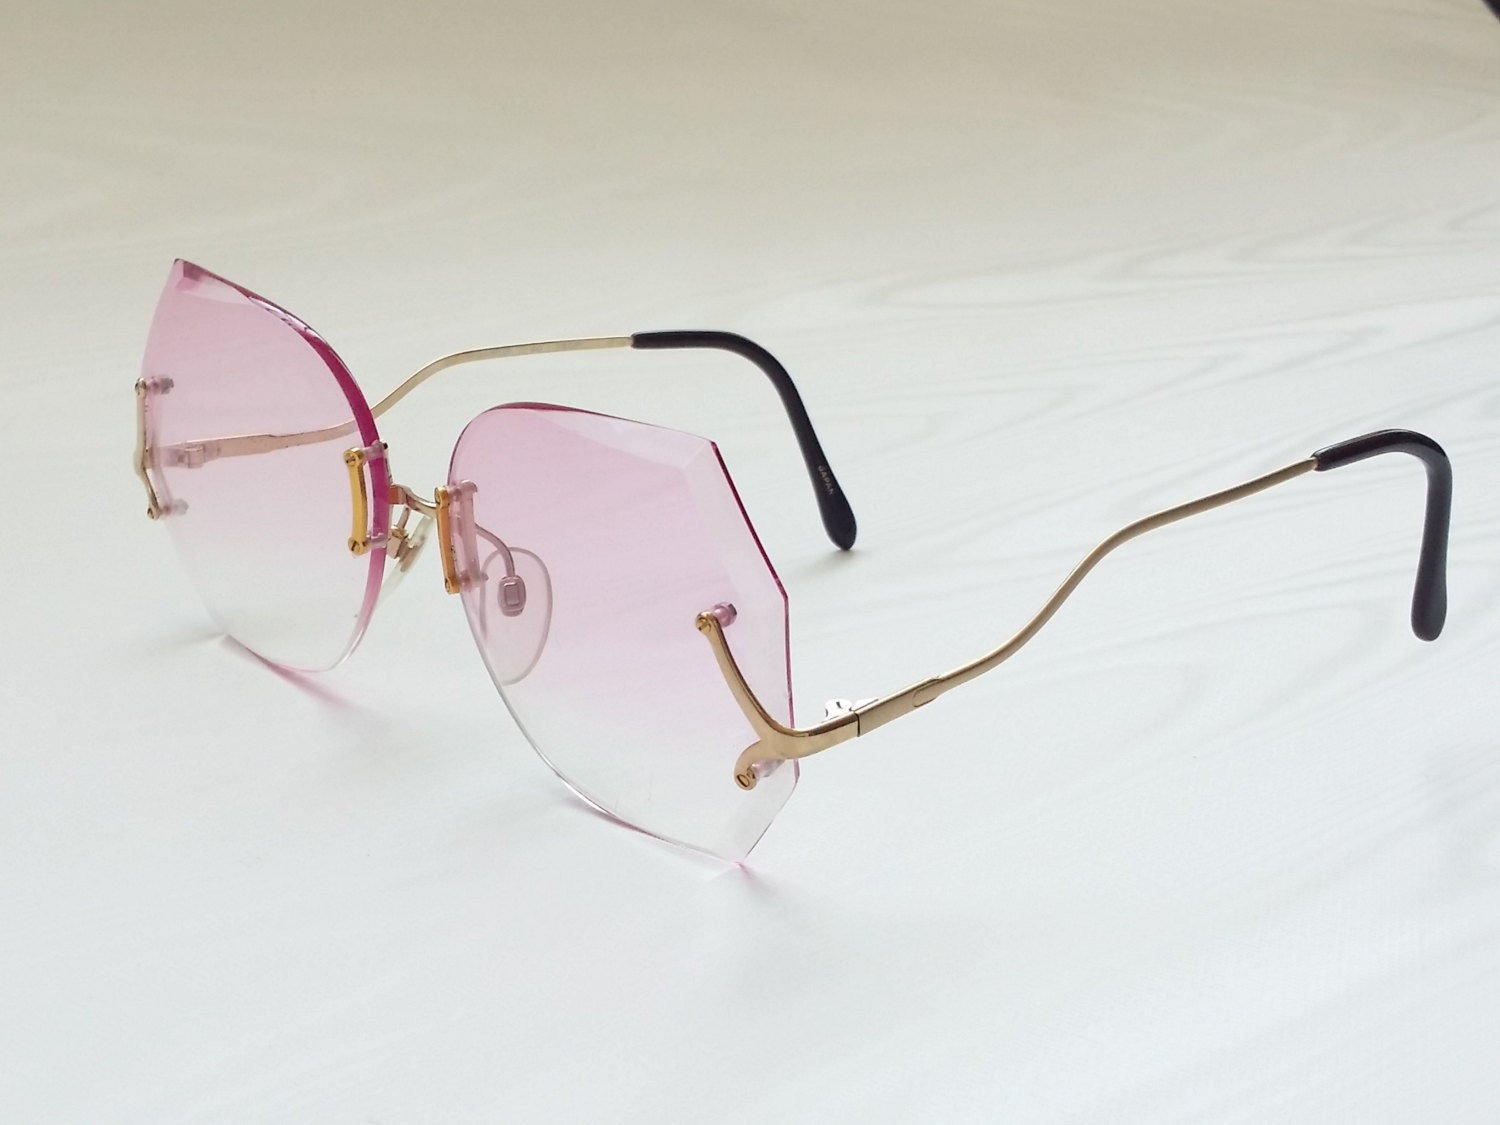 Frameless Vintage Glasses : 60s 70s Oversized Pink Gradated 18K Gold Plated Frameless